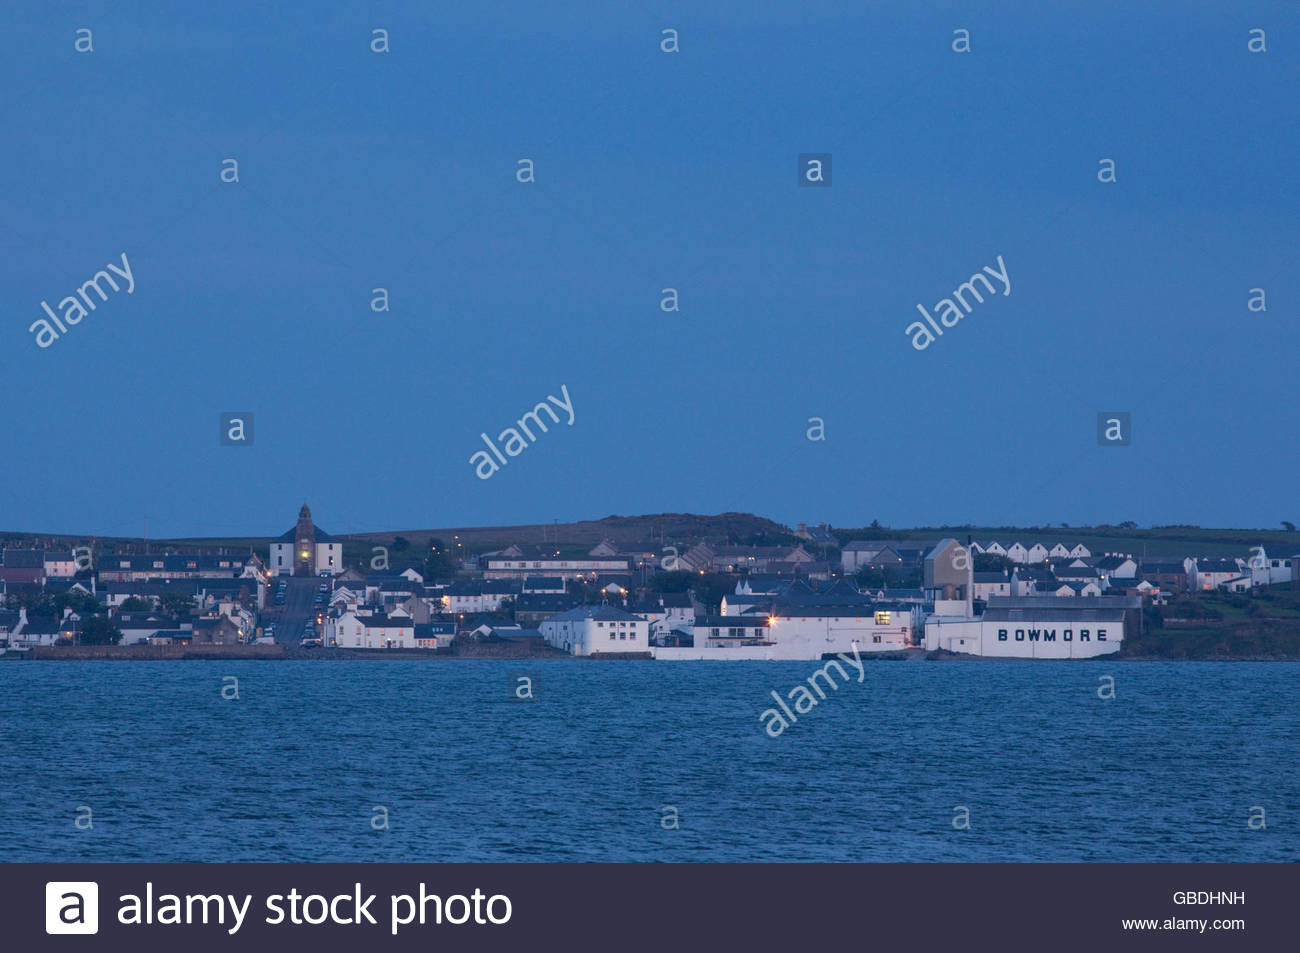 Looking across the bay to the village of Bowmore on the Isle of Islay, Inner Hebrides, Scotland. - Stock Image